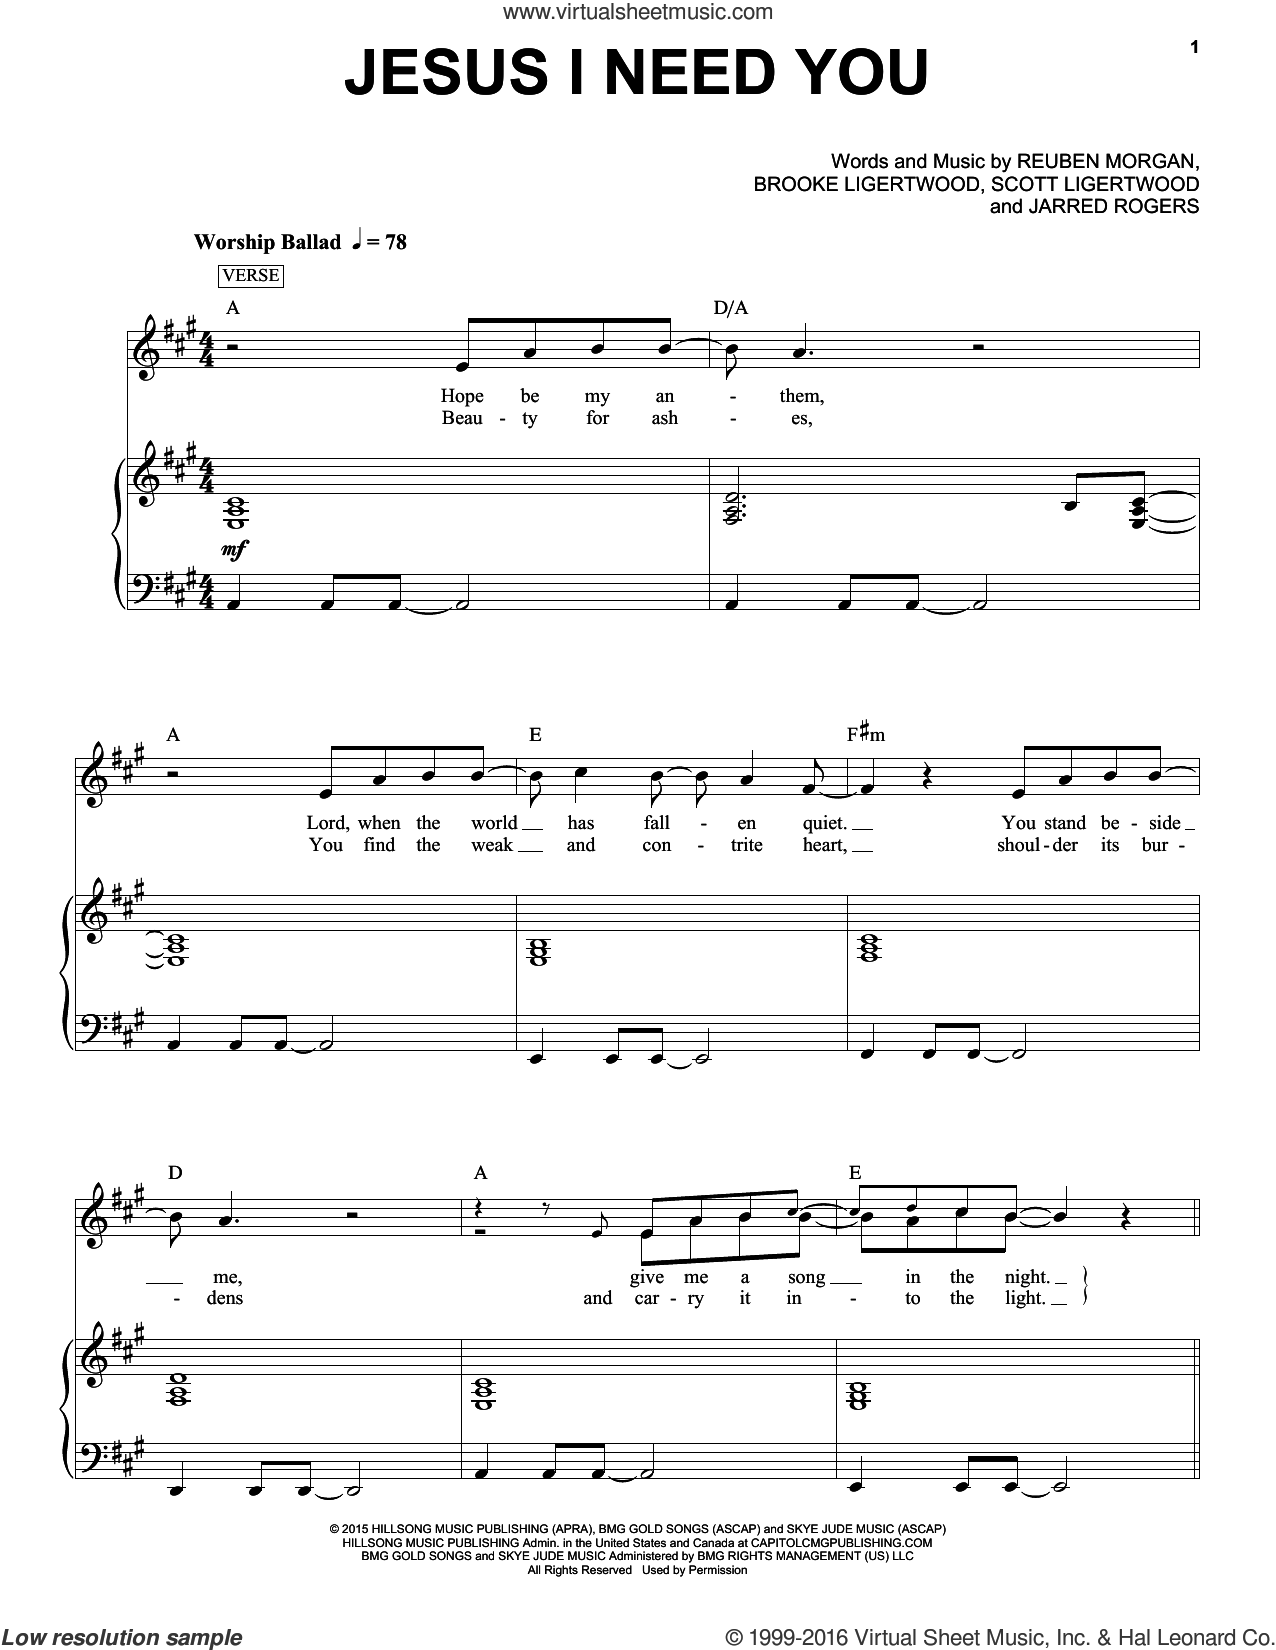 Jesus I Need You sheet music for voice and piano by Scott Ligertwood